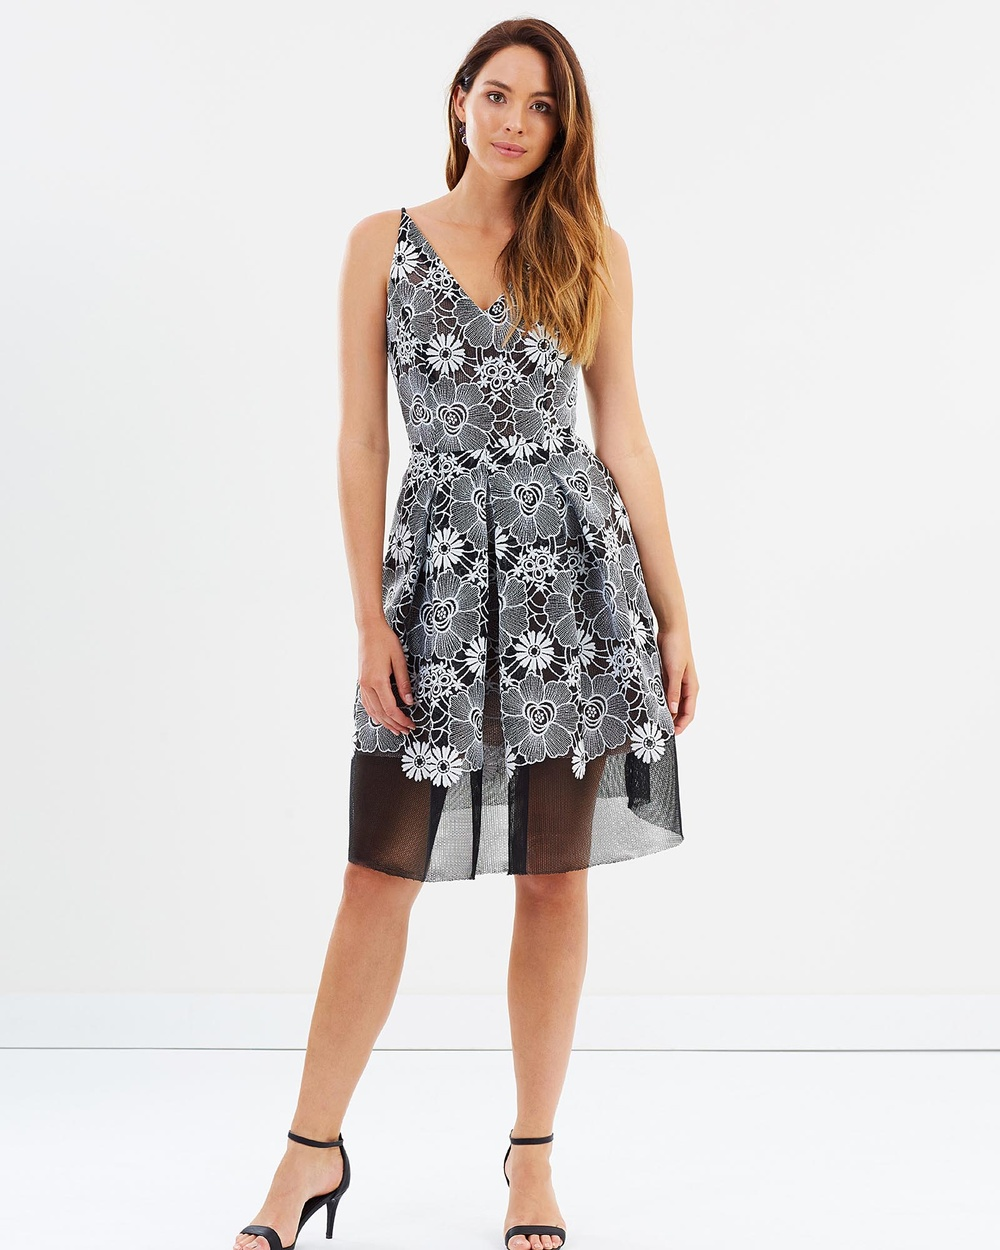 Montique Adele Mesh Embroided Dress Dresses Black Adele Mesh Embroided Dress